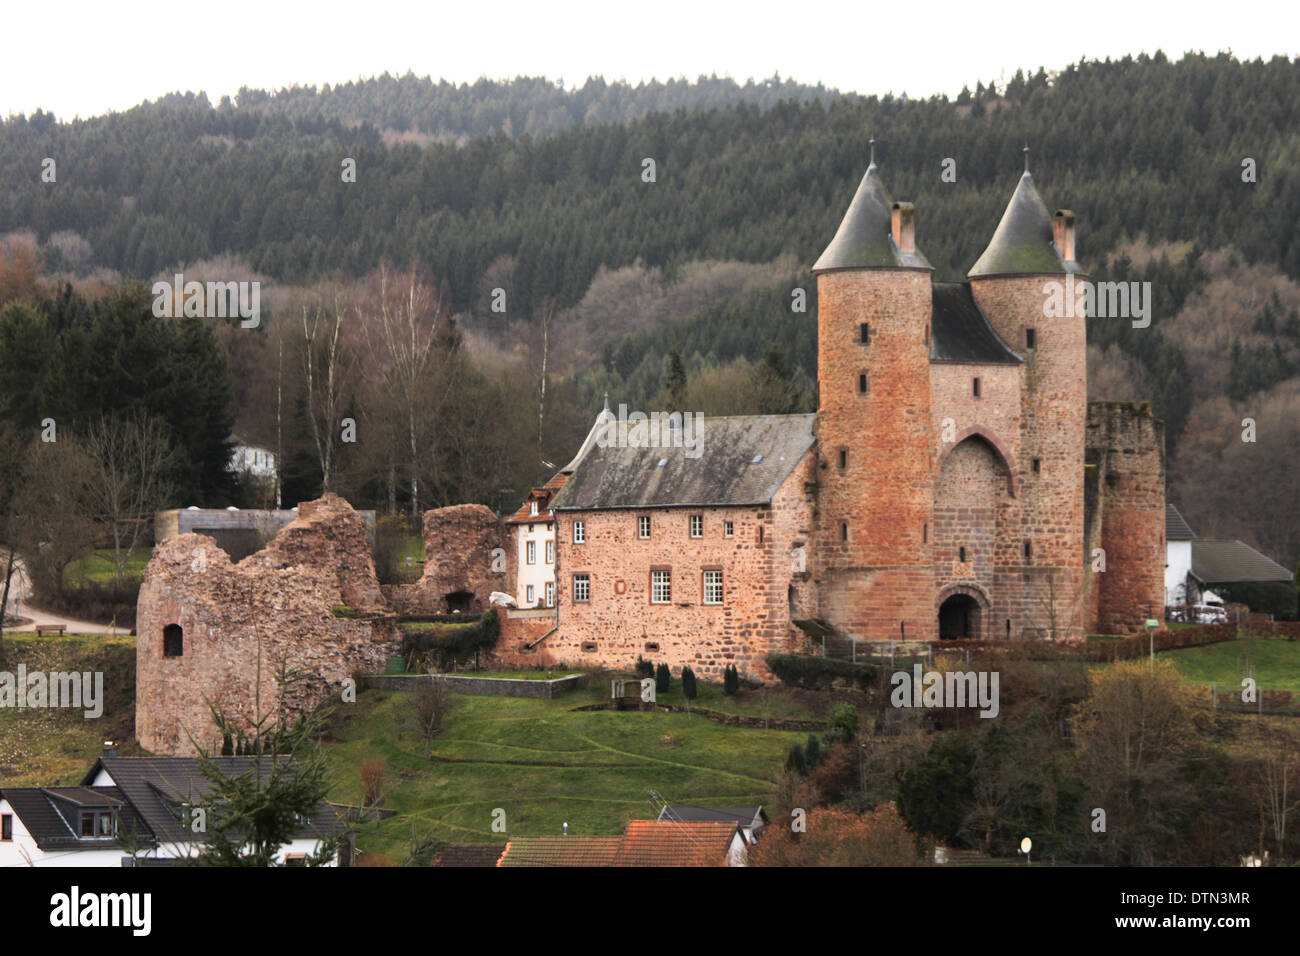 The Bertrada Castle in the Village Mürlenbach Eifel Stock Photo